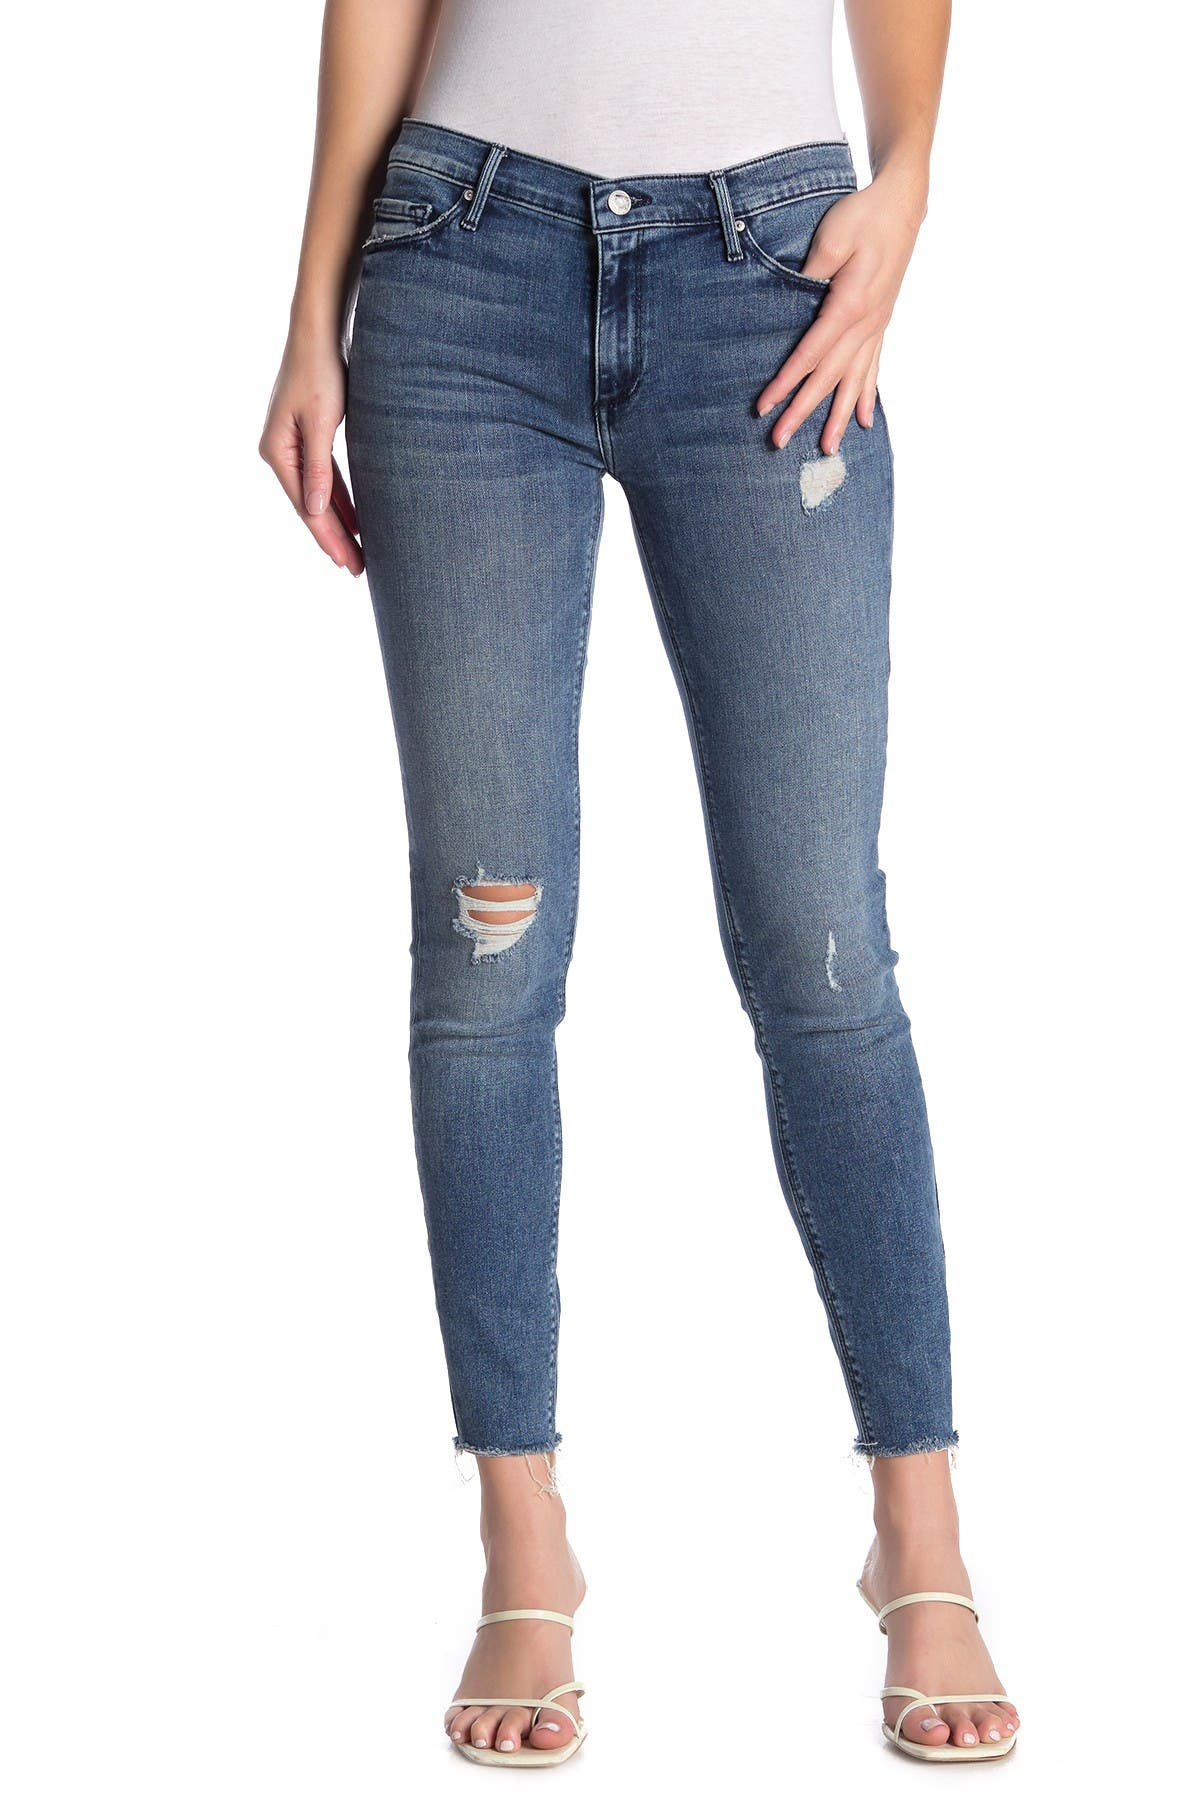 Image of Black Orchid Noah Ankle Fray Skinny Jeans